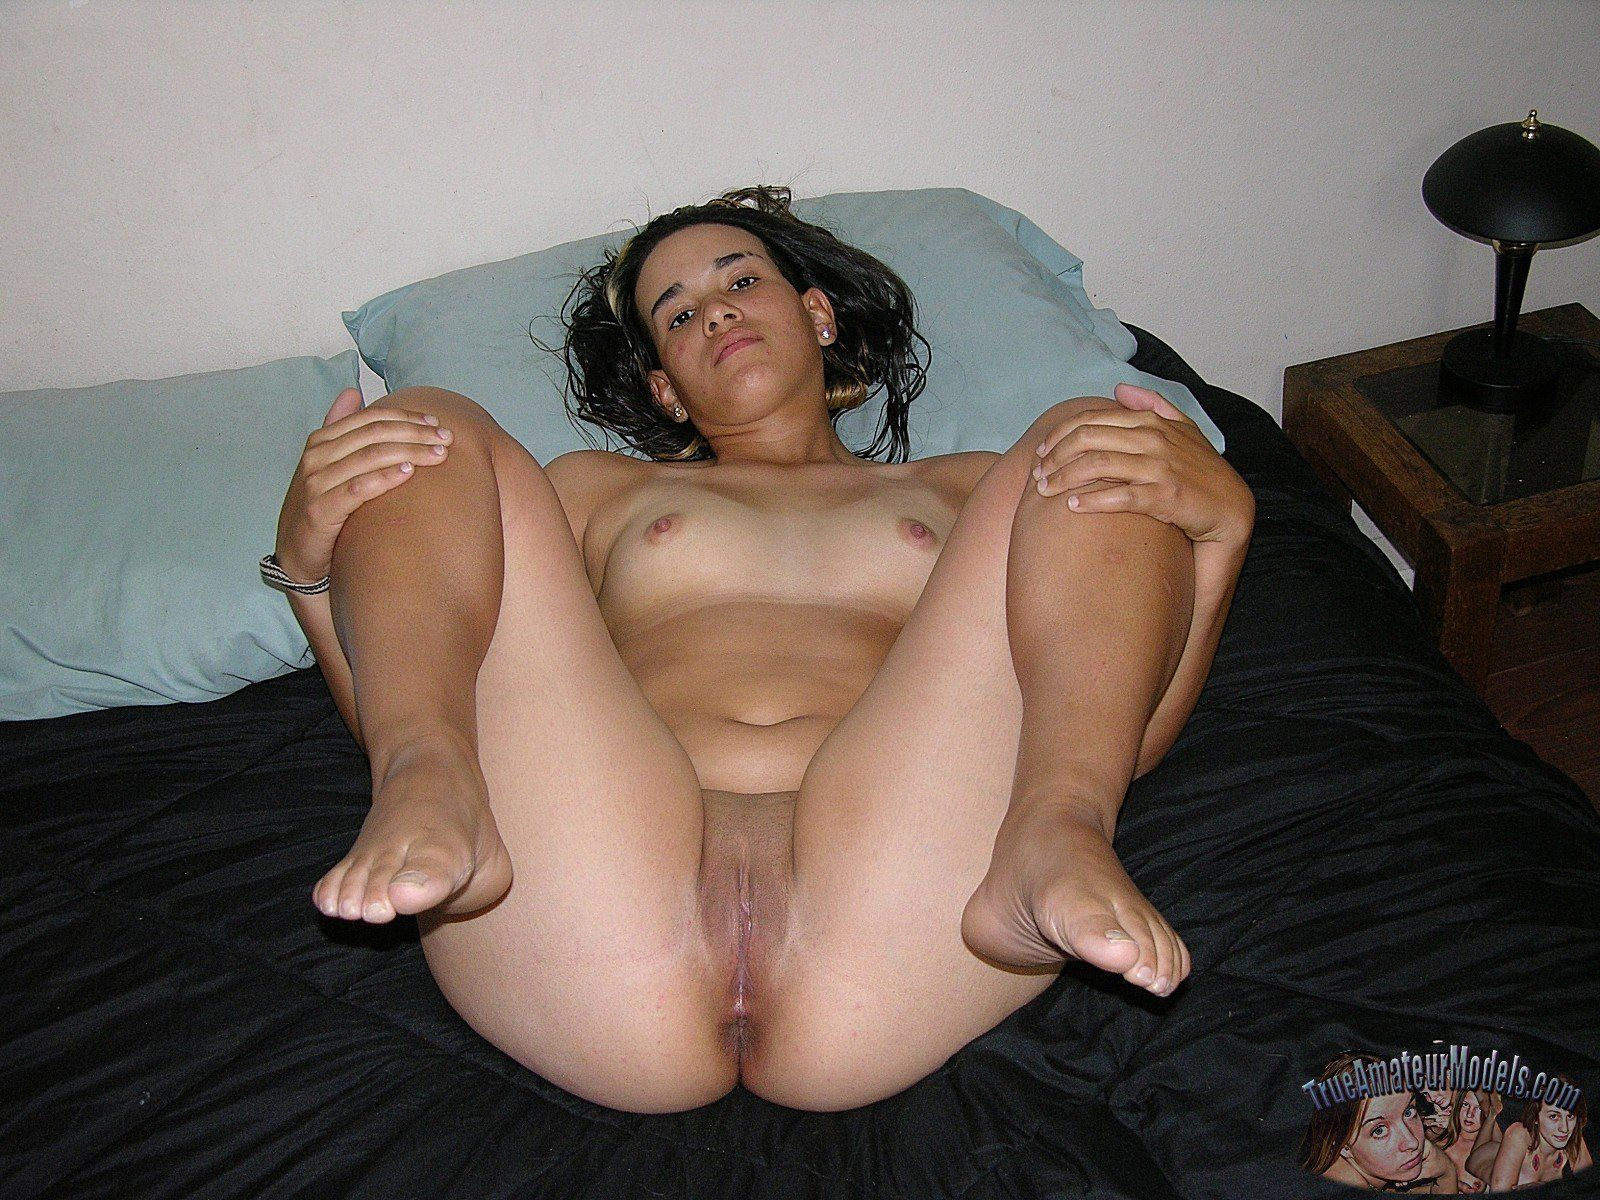 Something similar girls porn rican puerto homemade the message